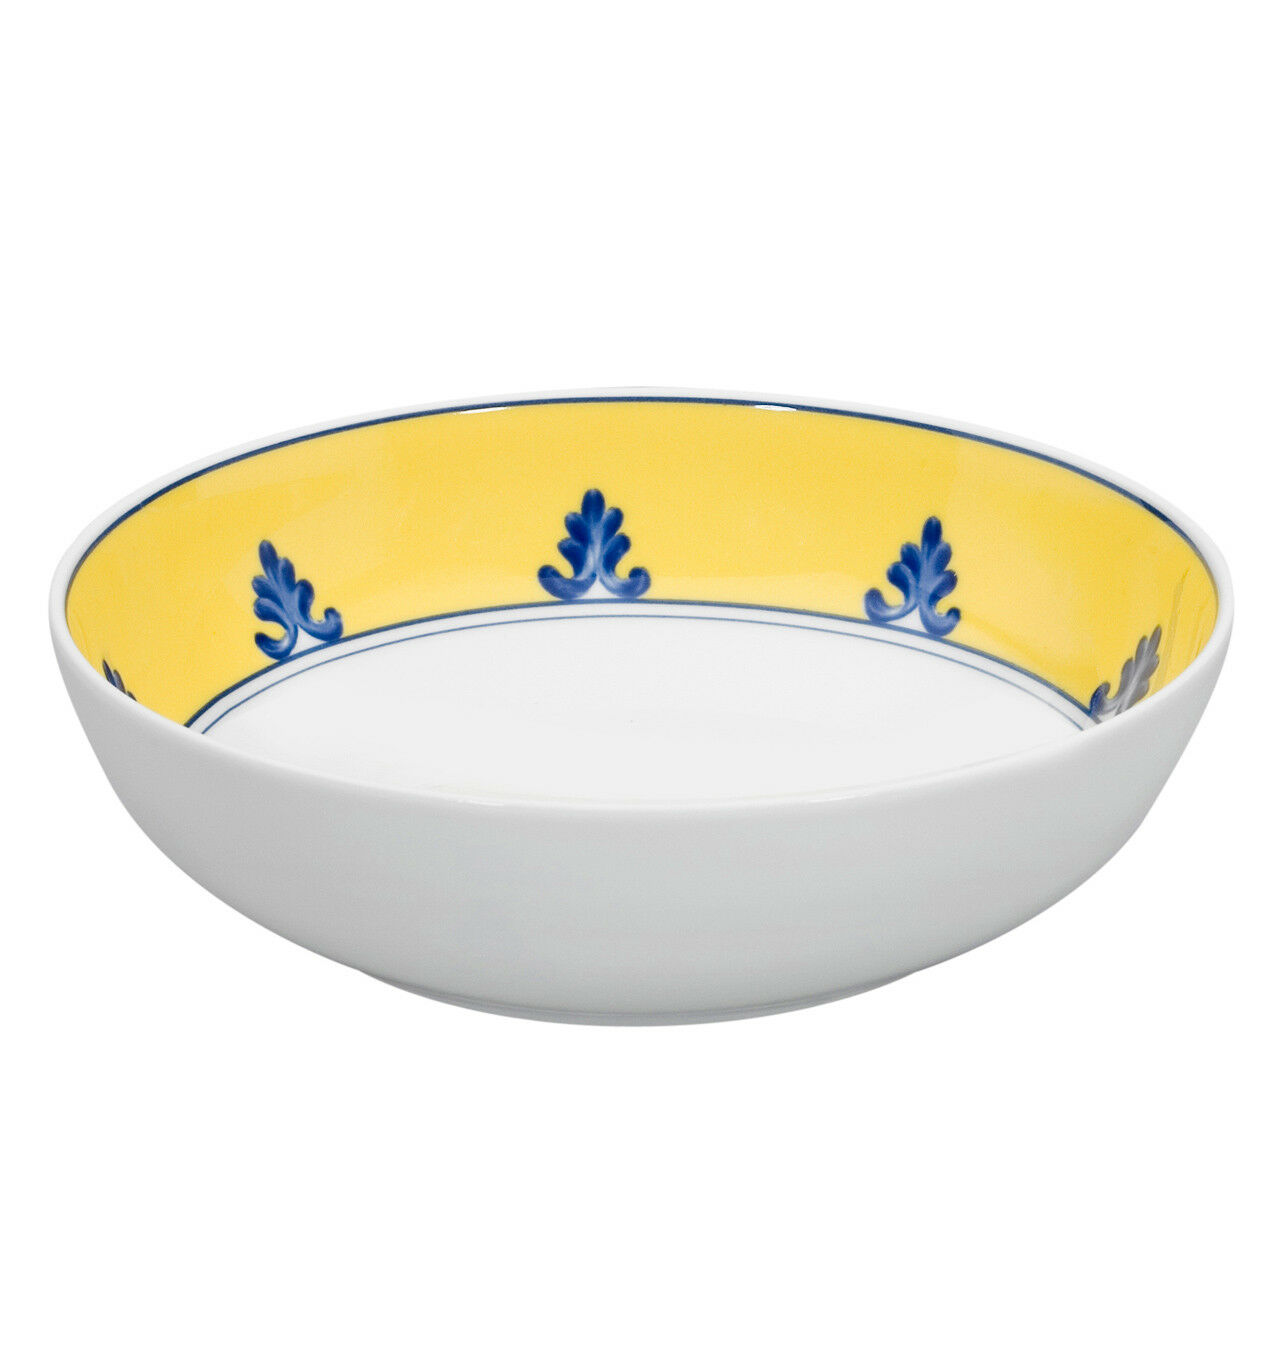 Vista Alegre Castelo Branco Cereal Bowl - Set of 12